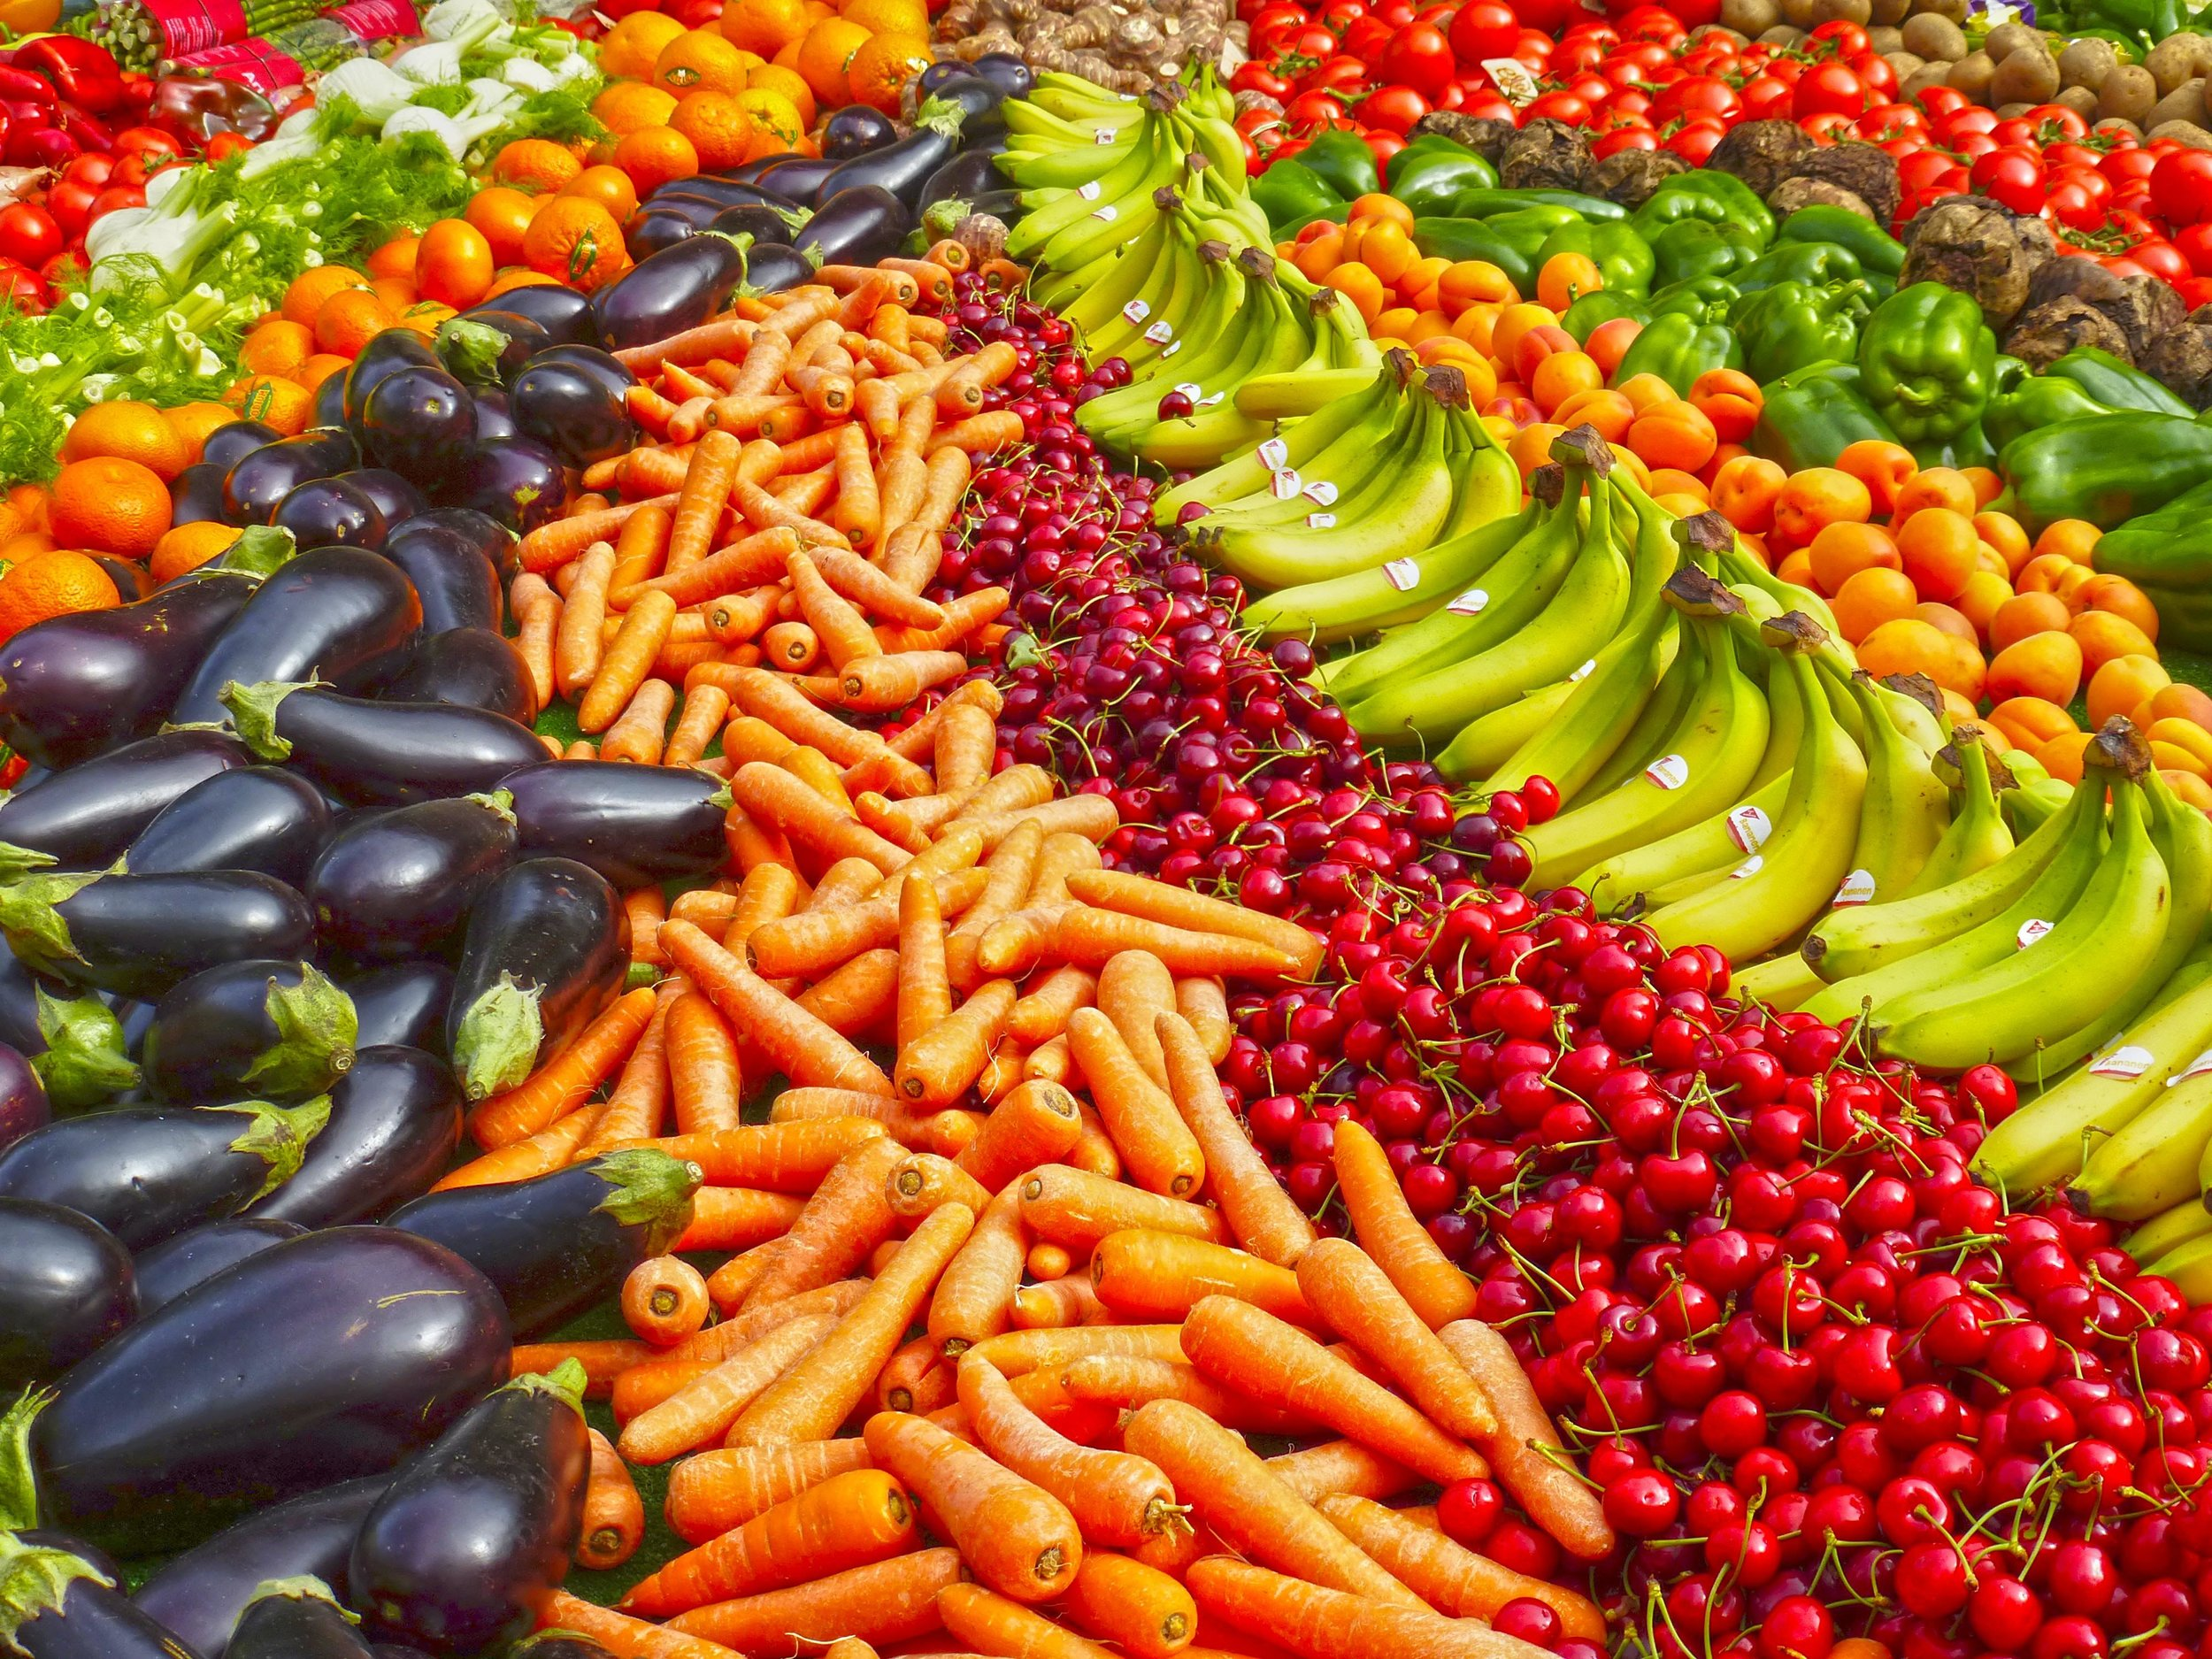 The foundation of ANY high quality diet is an abundance of fruits and vegetables.